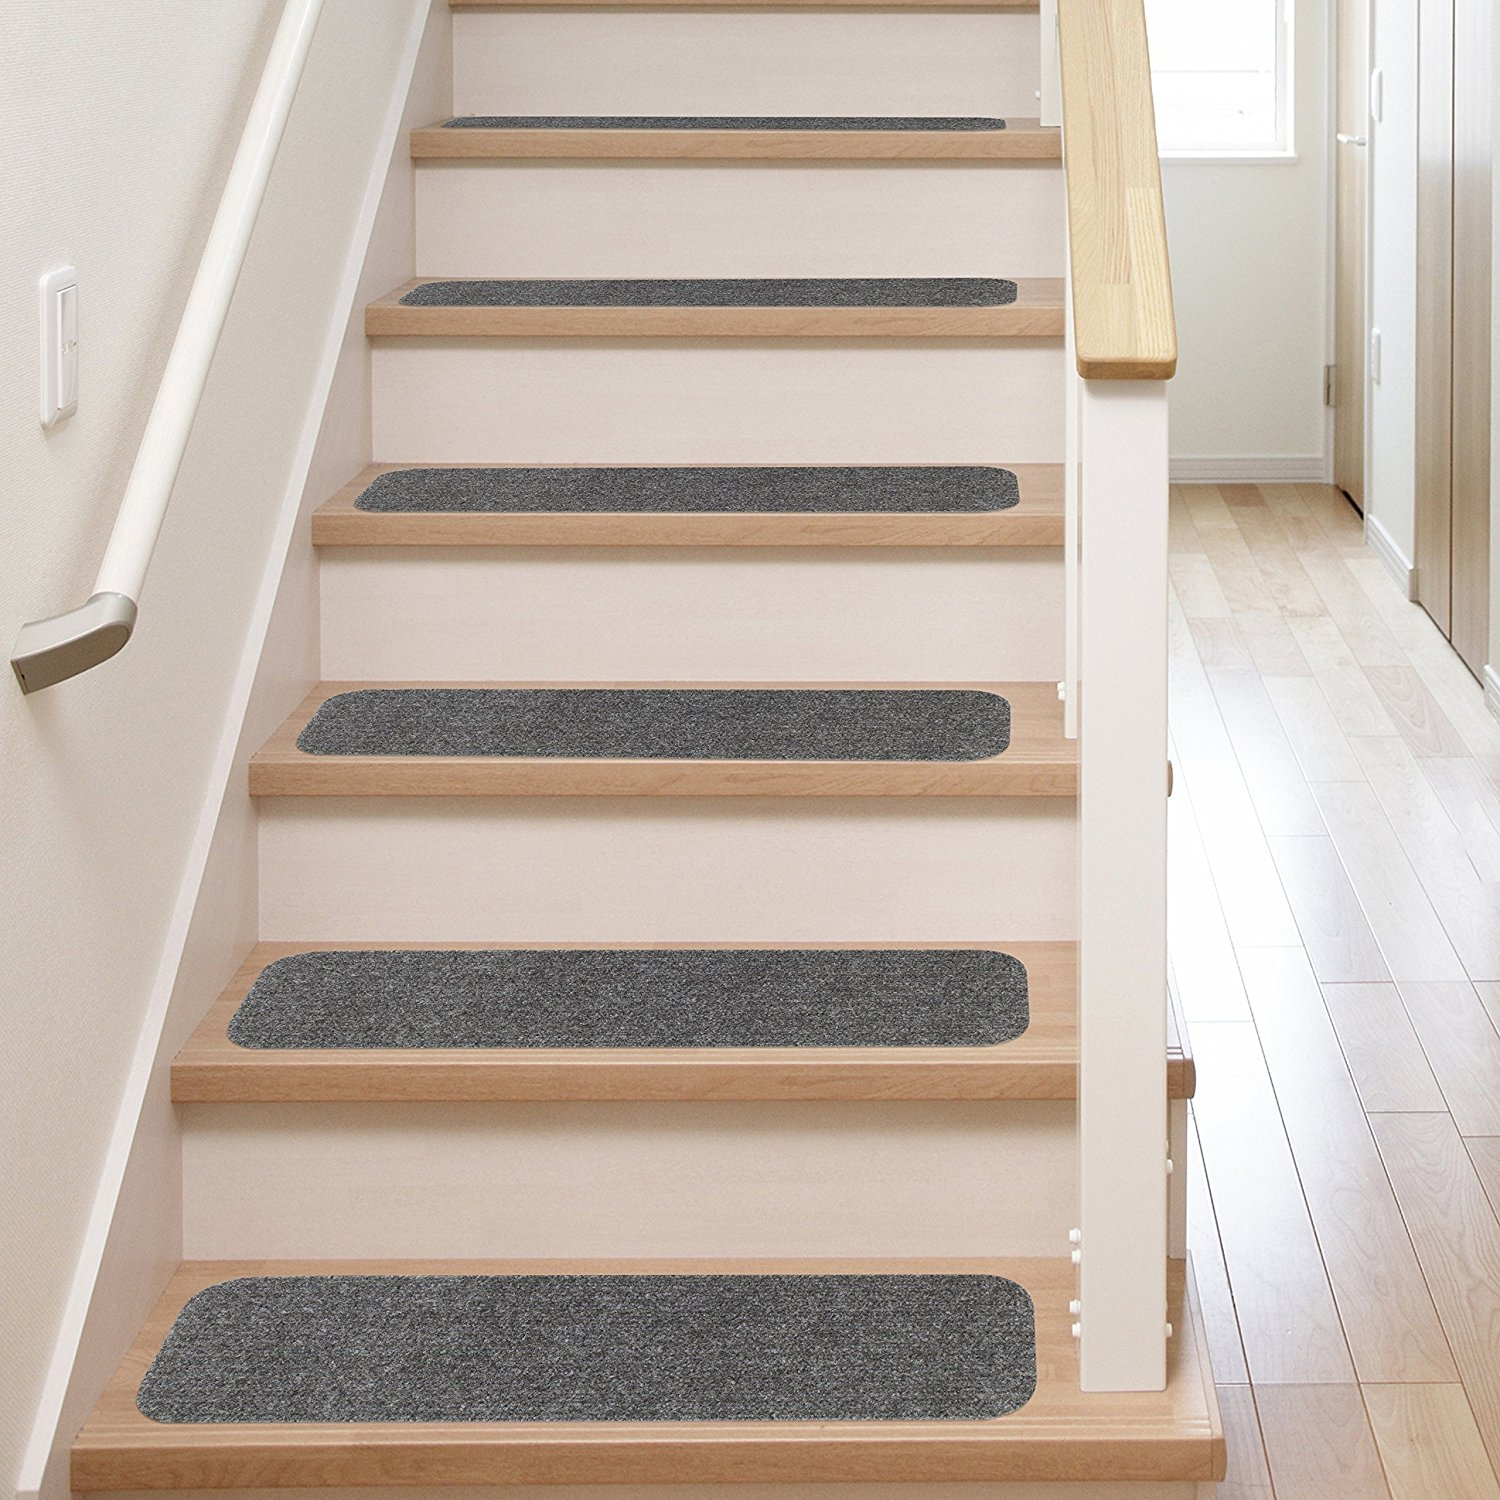 Popular Photo of Adhesive Carpet Strips For Stairs